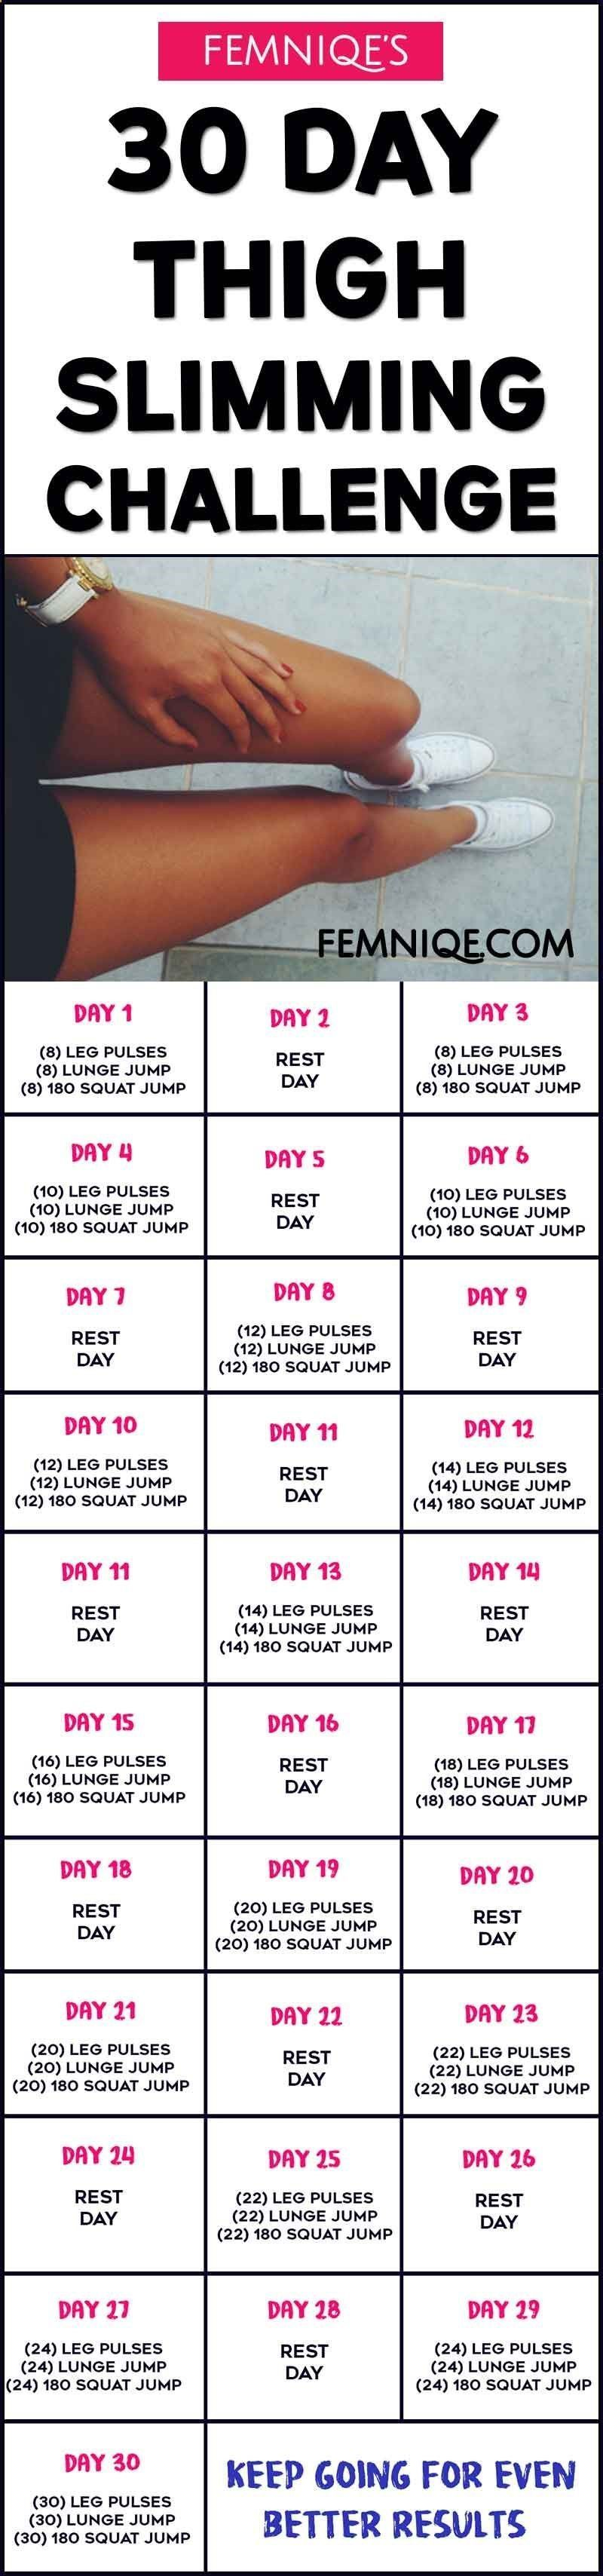 Mind, Body, and Soul Workout Challenge Mind, Body, and Soul Workout Challenge new pictures